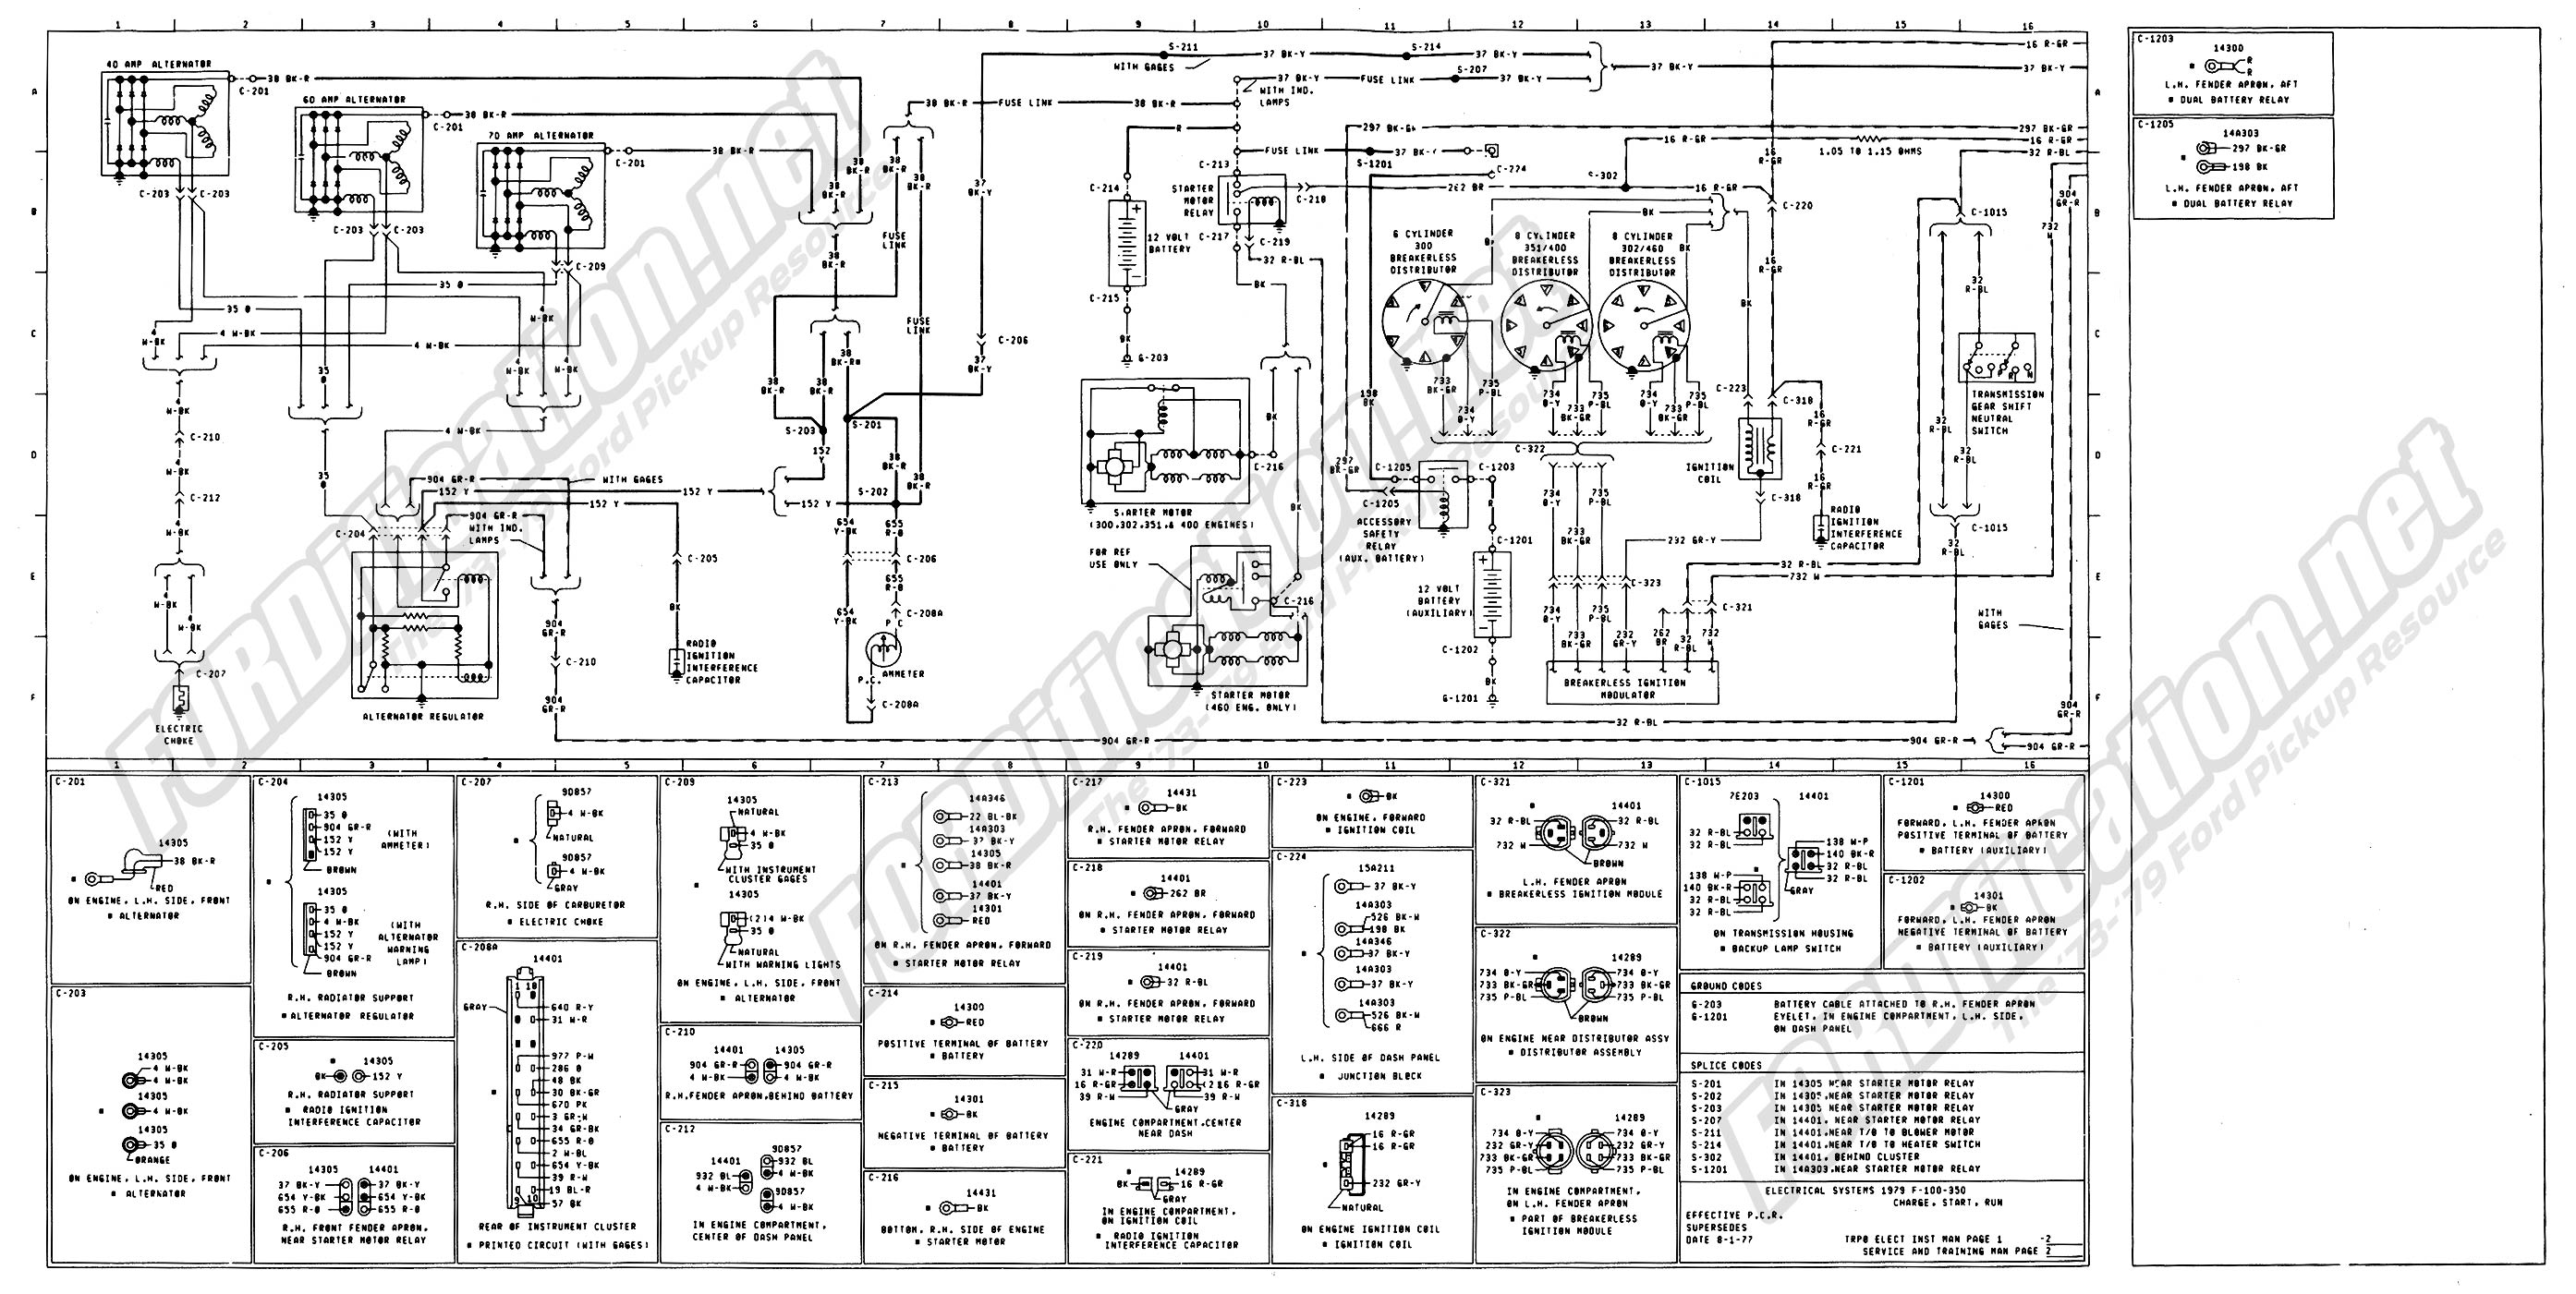 wiring_79master_2of9 1973 1979 ford truck wiring diagrams & schematics fordification net Ford 3 Wire Alternator Diagram at soozxer.org